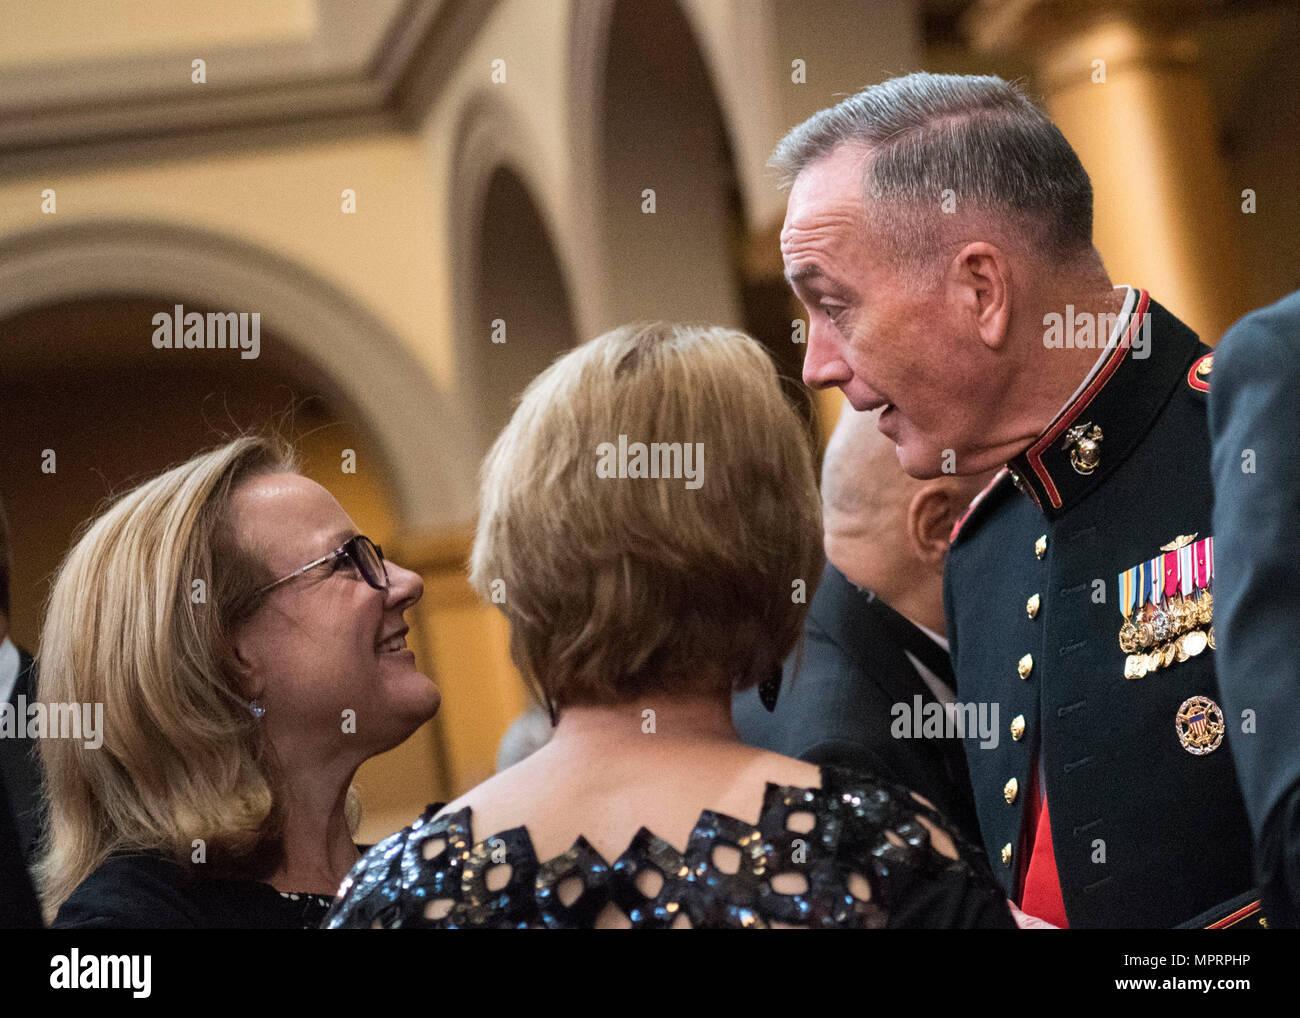 Marine Corps Gen. Joseph F. Dunford Jr., chairman of the Joint Chiefs of Staff, makes remarks during the Tragedy Assistance Program for Survivors (TAPS) 2017 Honor Guard Gala in Washington, D.C., April 12, 2017. Gen. Dunford served as the event's keynote speaker where he spoke about the importance of the TAPS organization. During the event, the National Basketball Association and USA Basketball were awarded the inaugural National Community Partnership Award, presented for the support they have shown for the Nation's military families and personal engagement with the surviving families of Ameri Stock Photo